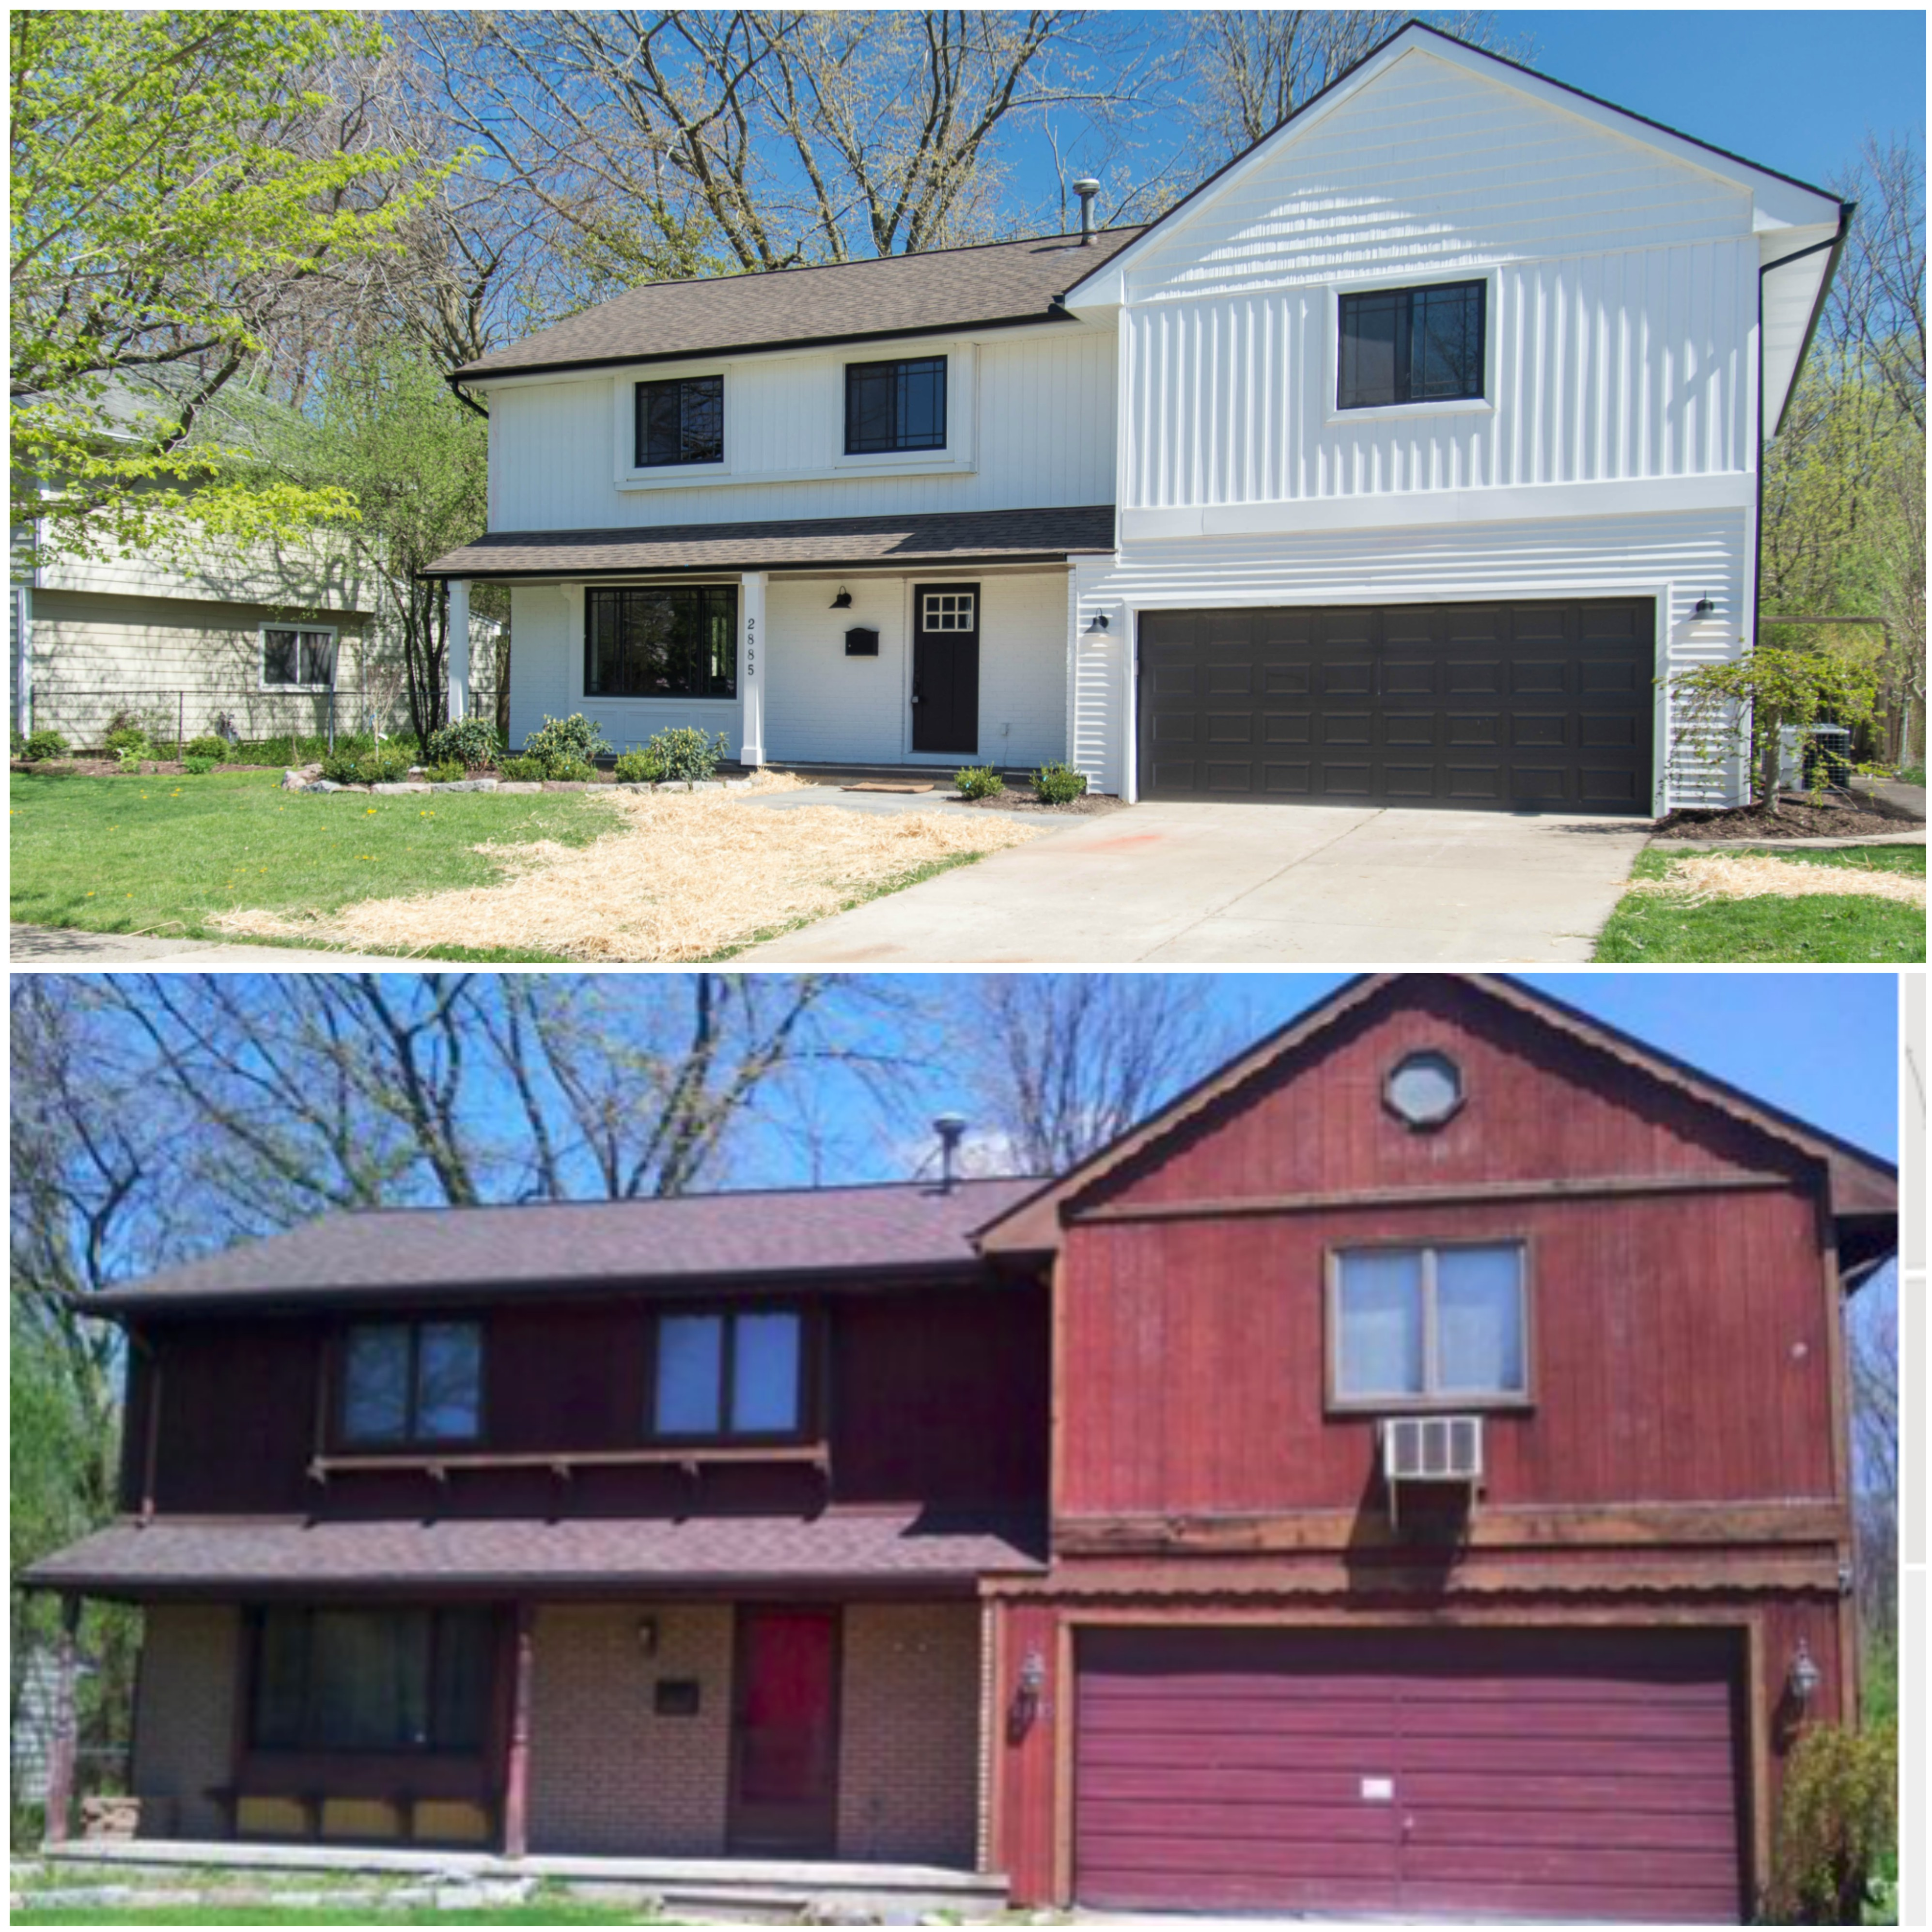 Napa Style Farmhouse in Ann Arbor Before and After